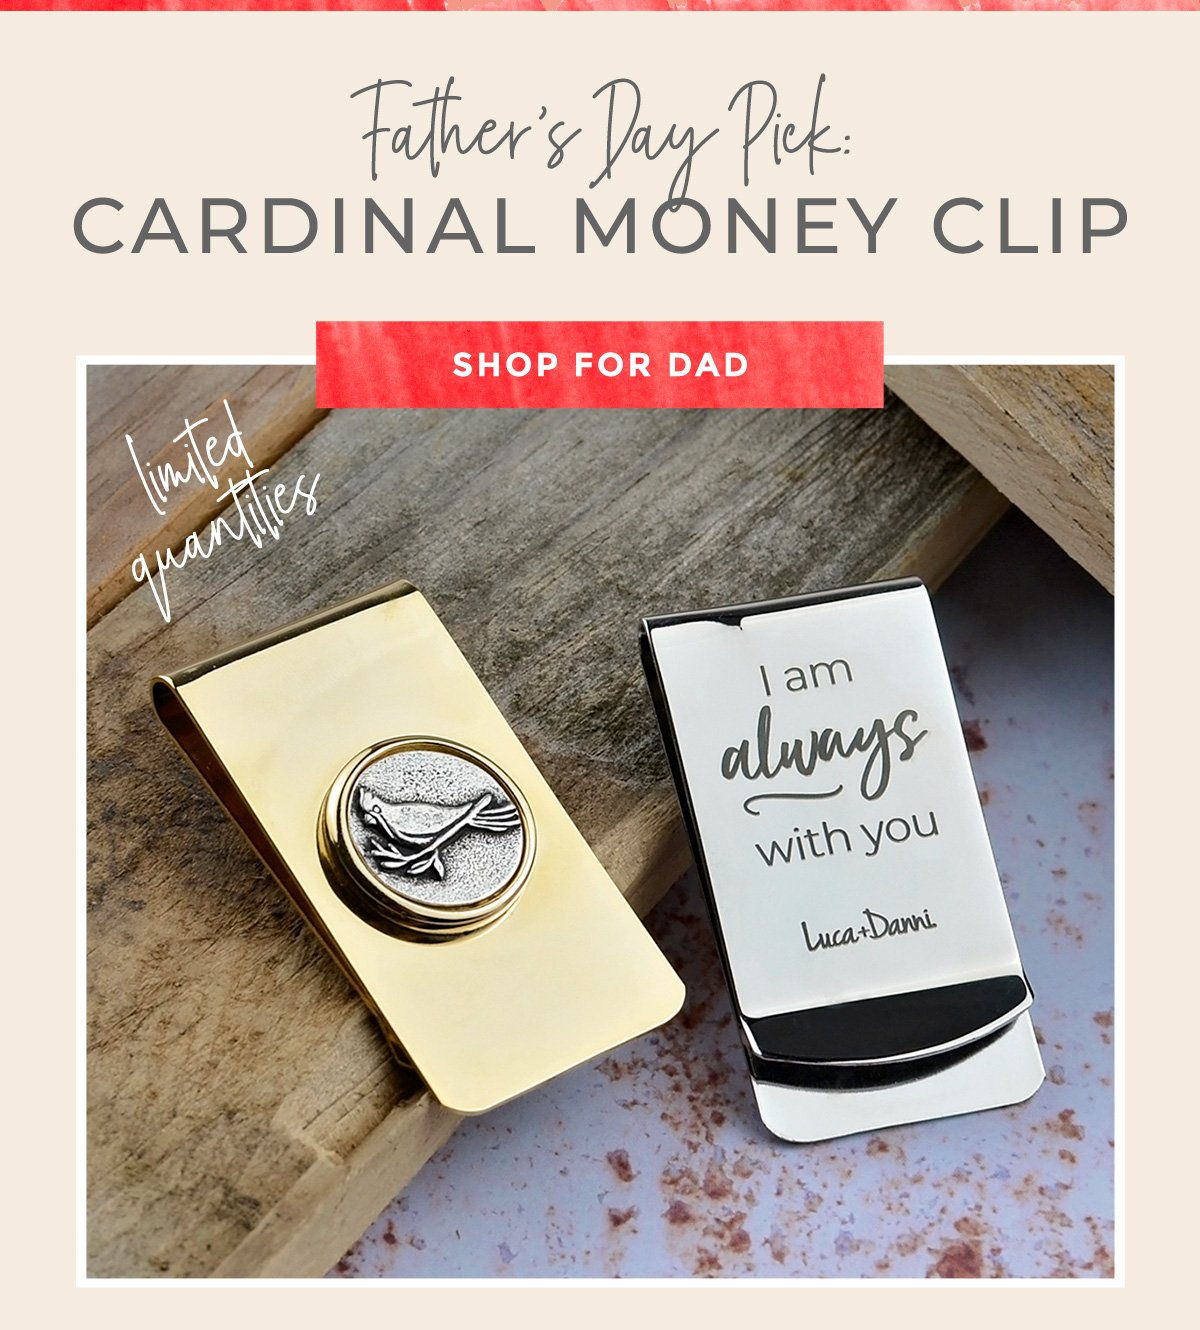 Father's Day Pick: CARDINAL MONEY CLIP | SHOP FOR DAD